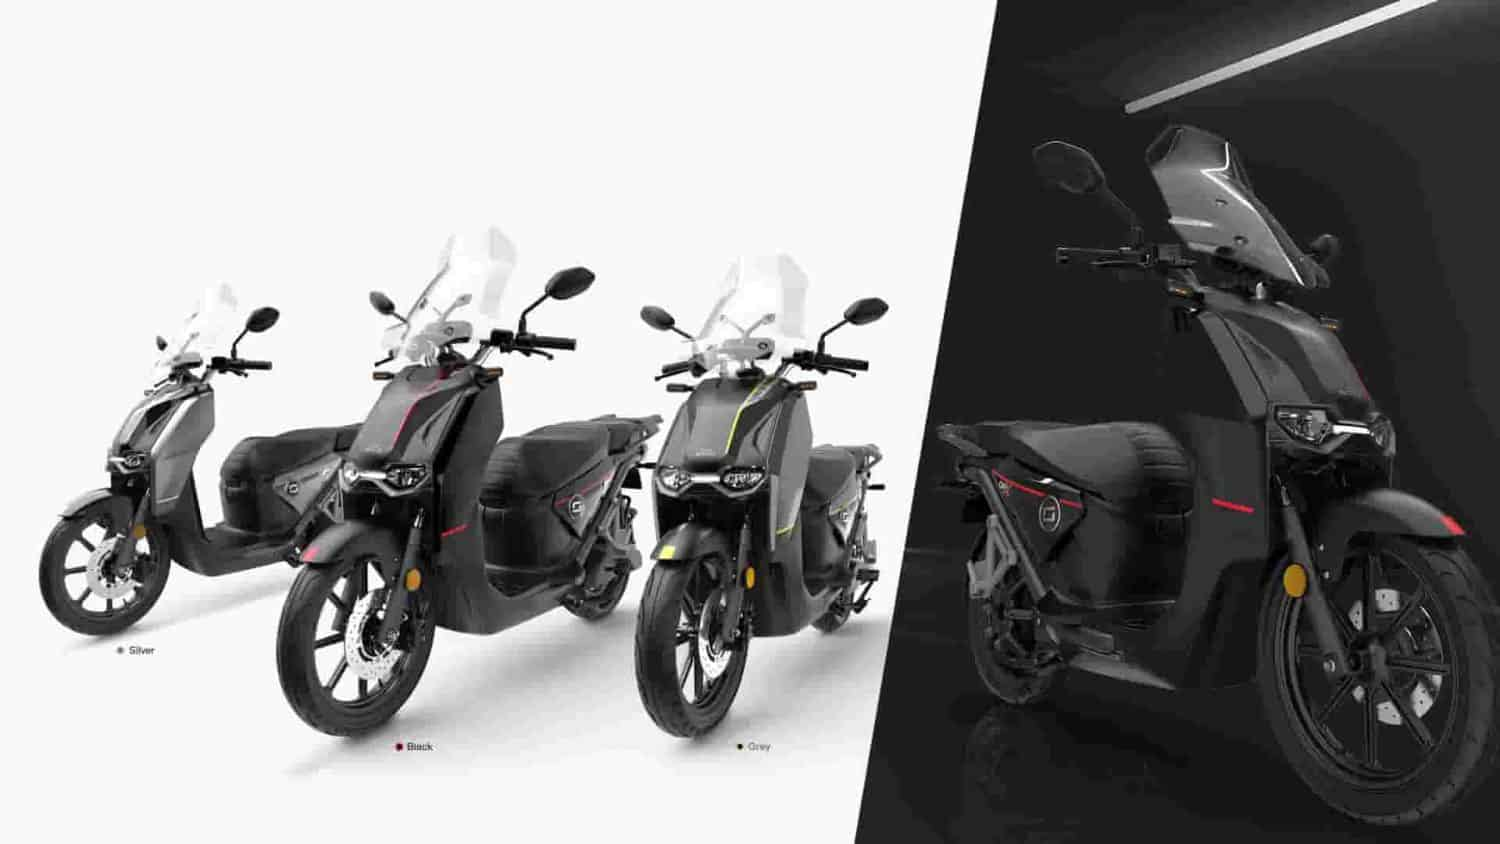 Super Soco has revealed its new electric maxi scooter. It is called the CPx and is claimed to be equivalent to a 125cc petrol scooter.